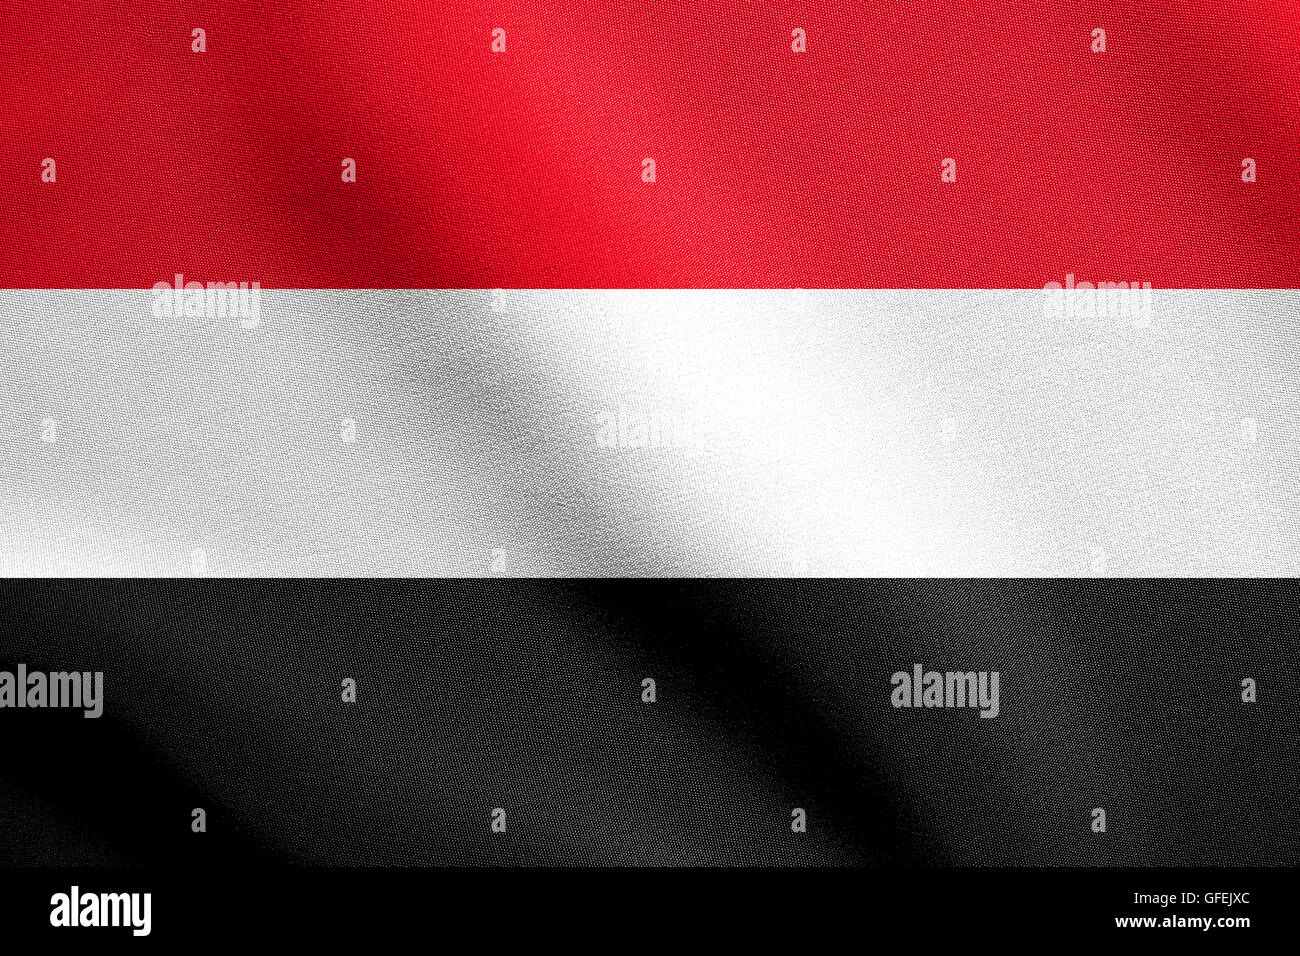 Flag of Yemen waving in the wind with detailed fabric texture. Yemeni national flag. - Stock Image